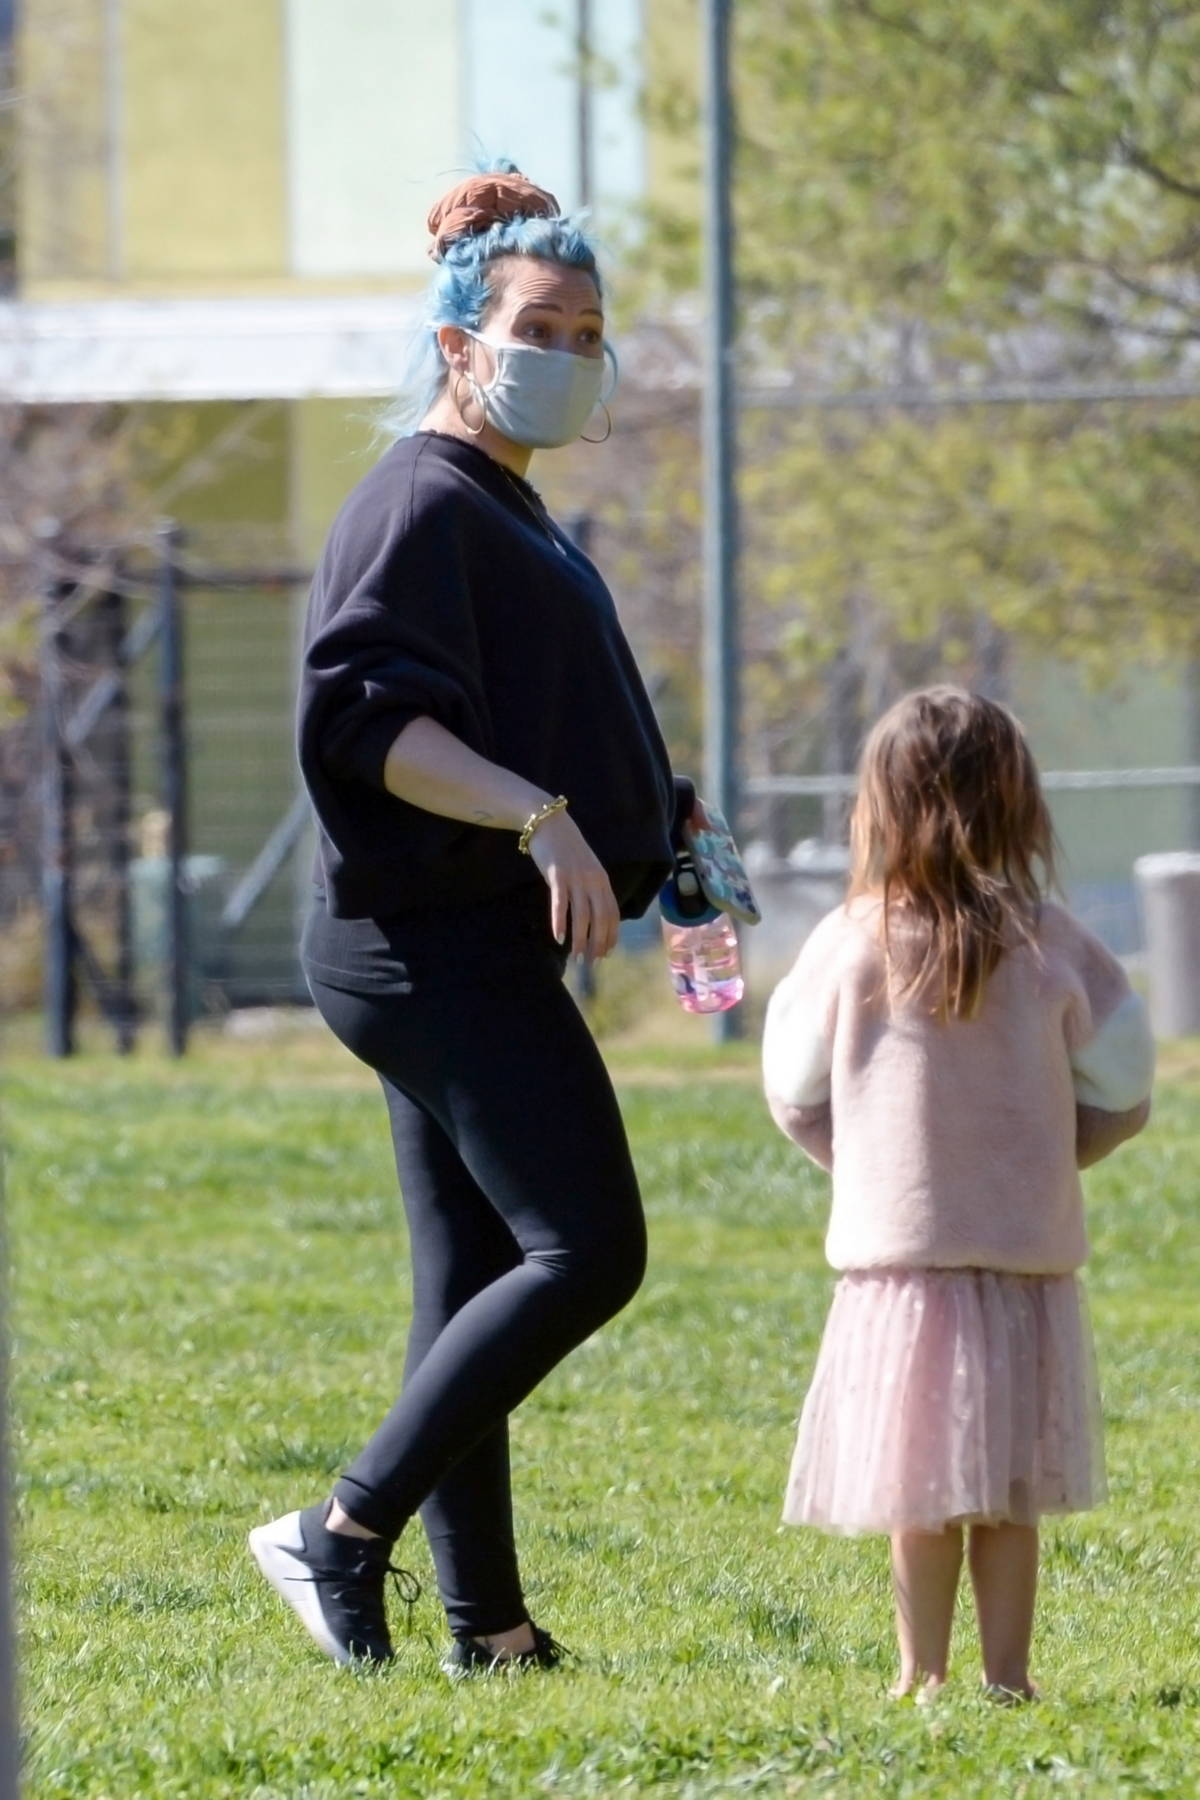 Hilary Duff enjoys some quality time with her family at a park in Los Angeles